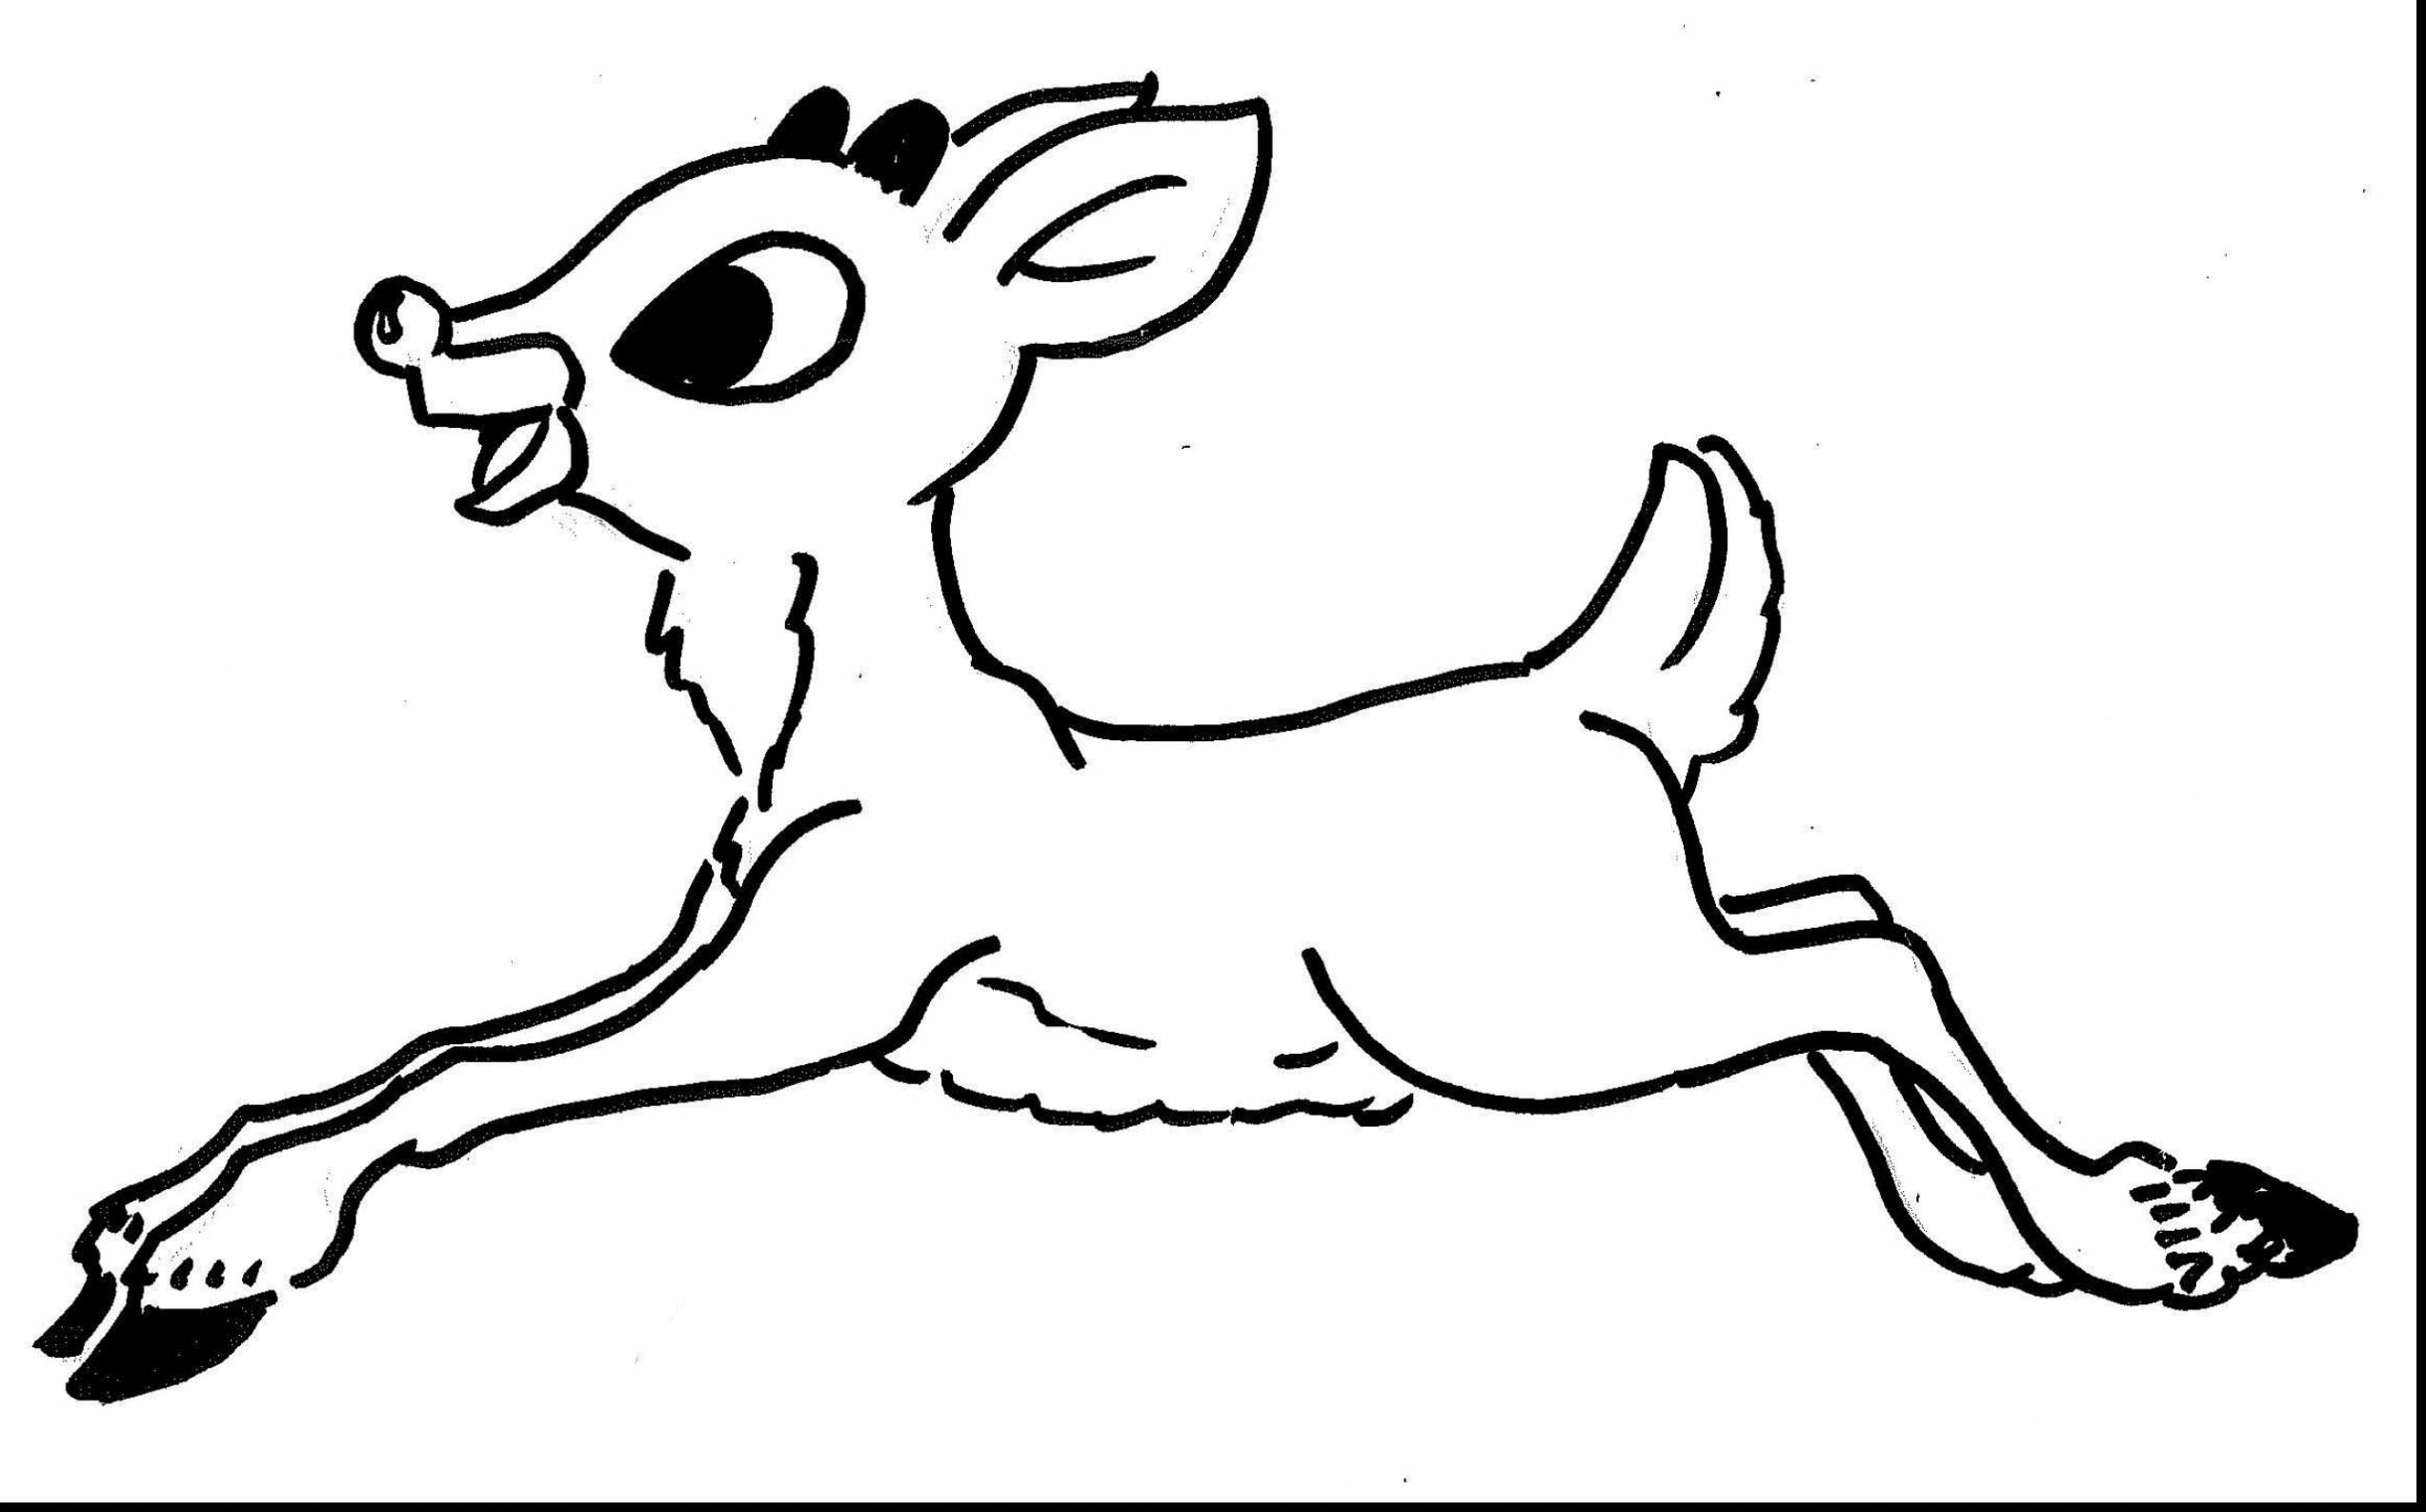 Sleigh And Reindeer Coloring Pages At Getdrawings